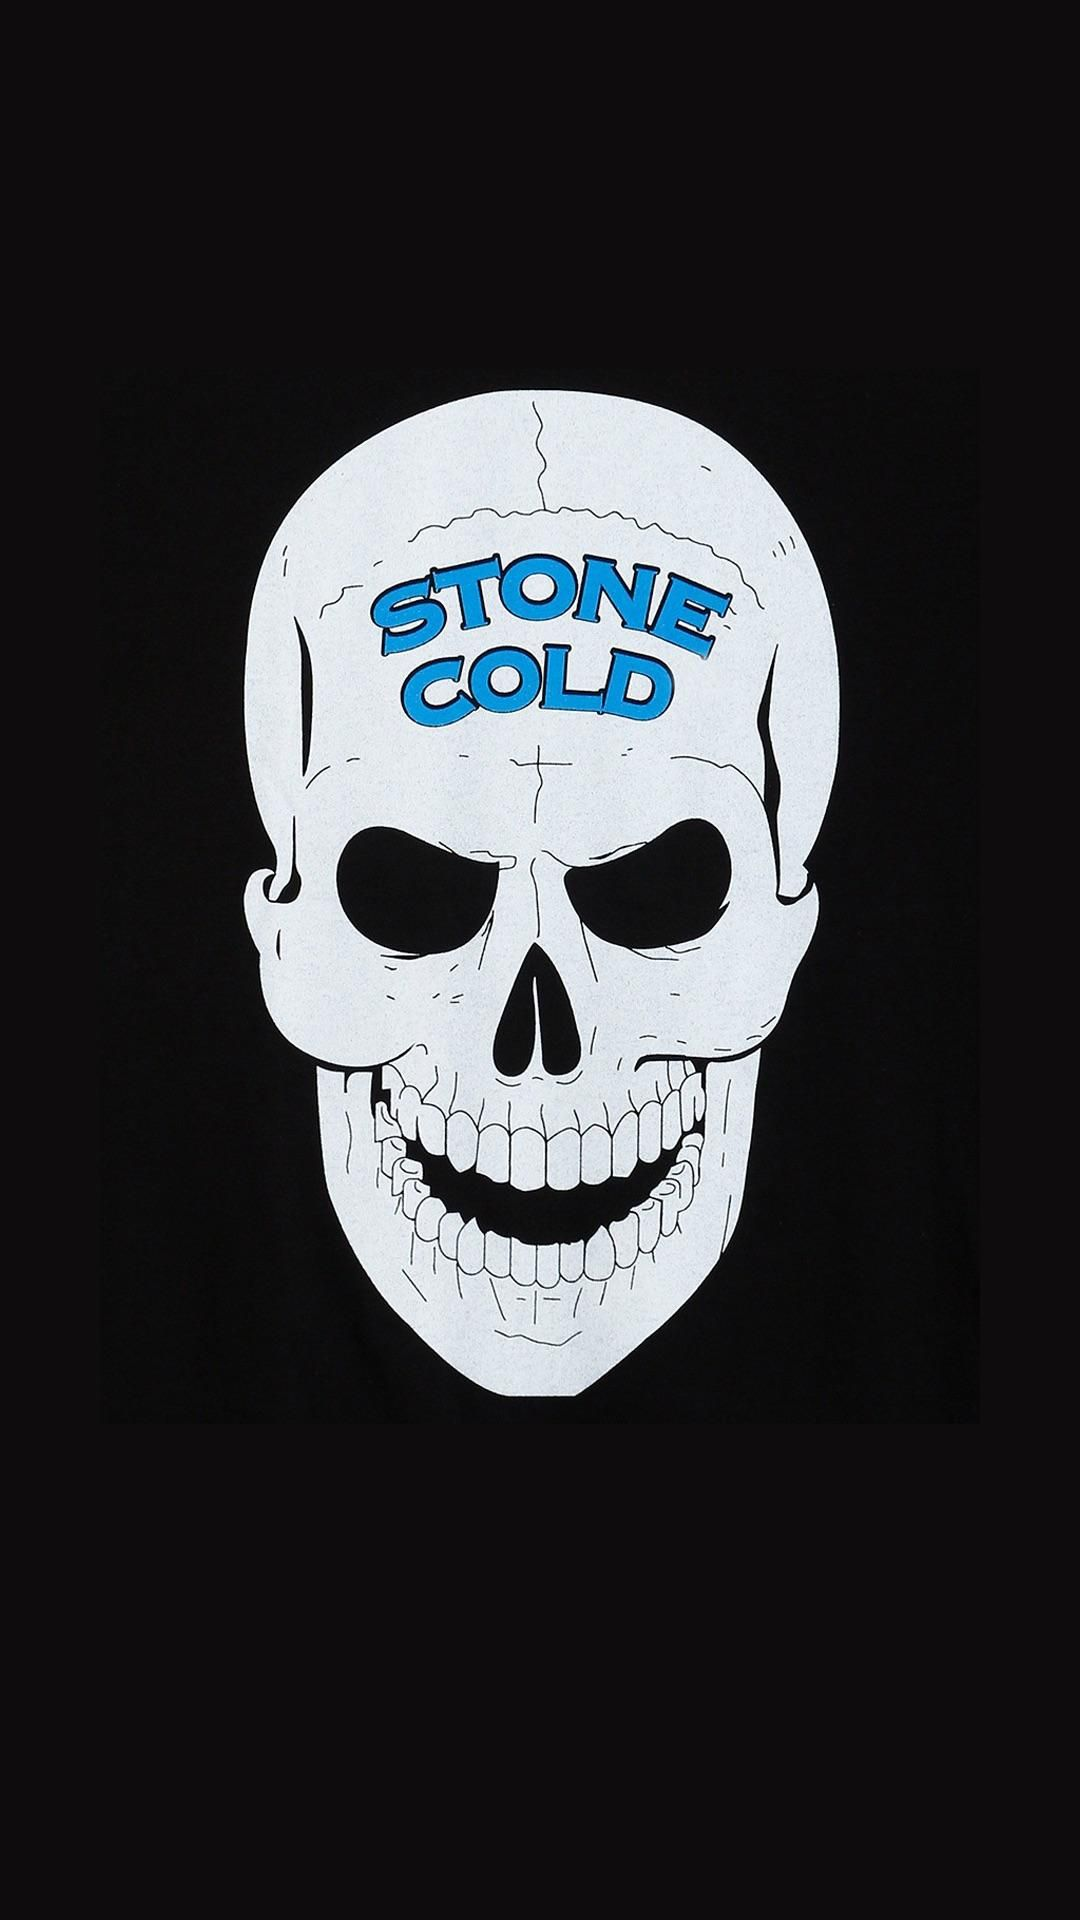 Cool Skull hd wallpaper for iPhone 7